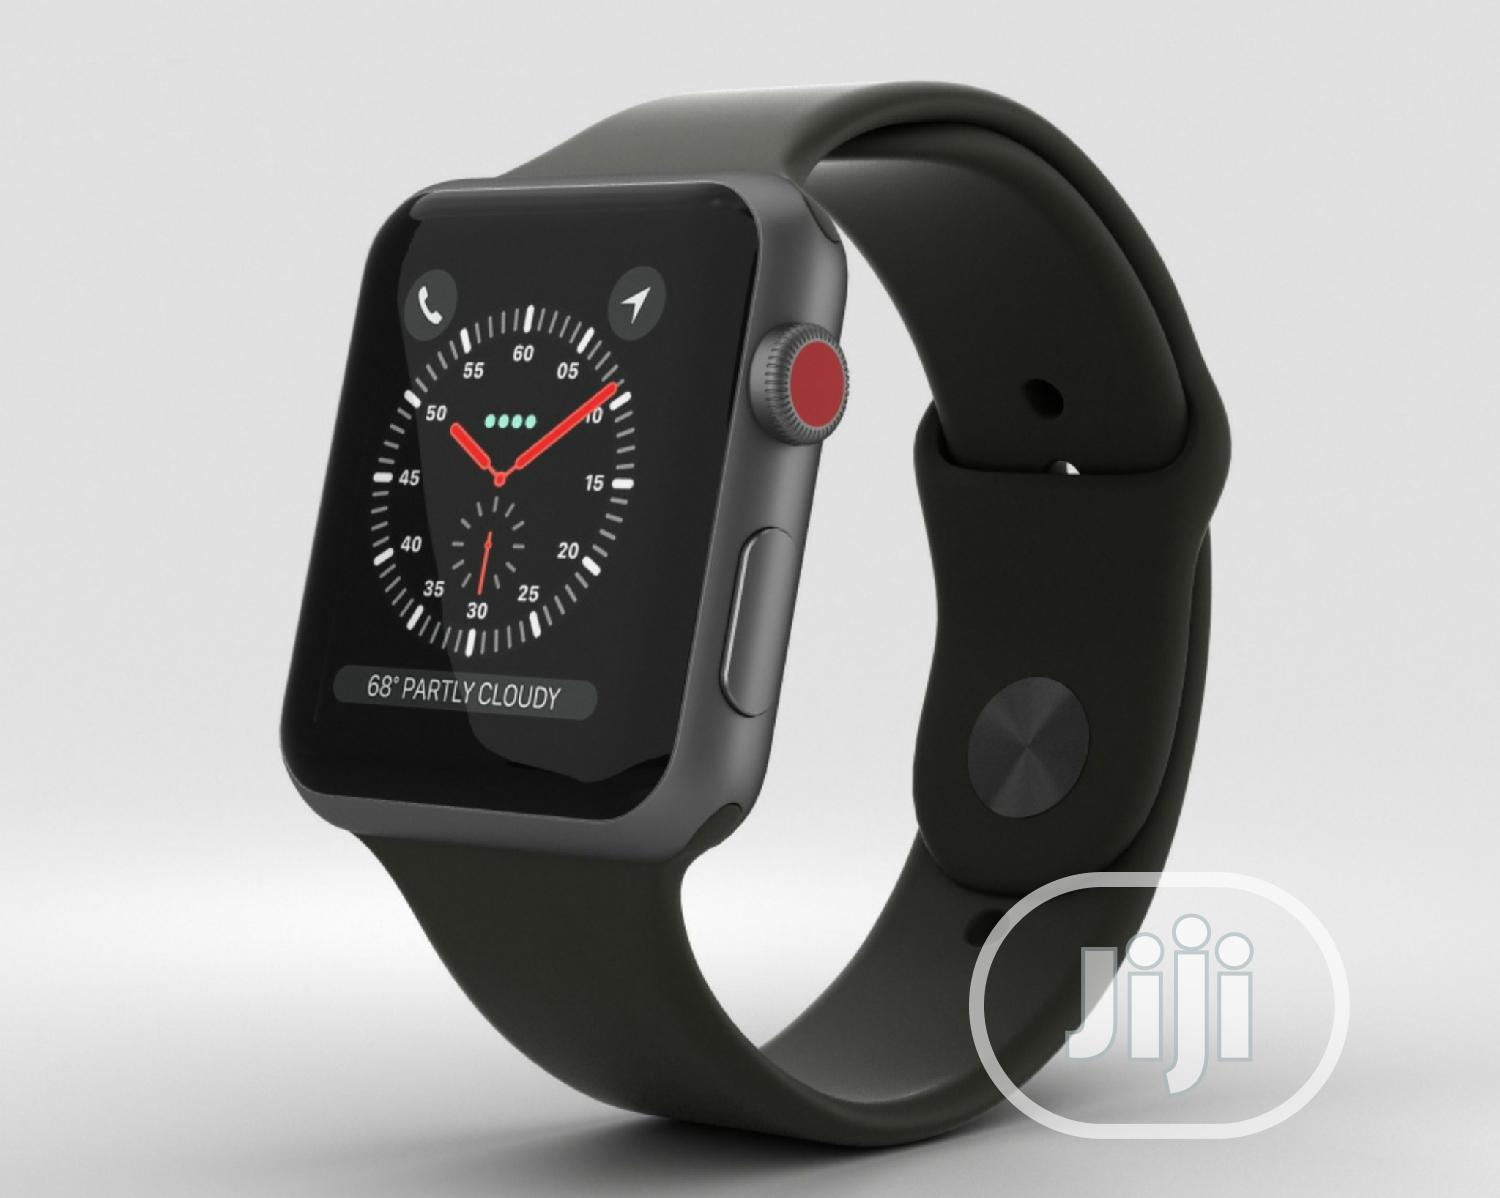 Apple Watch Series 3 (GPS + Cellular) With Black Sport Band